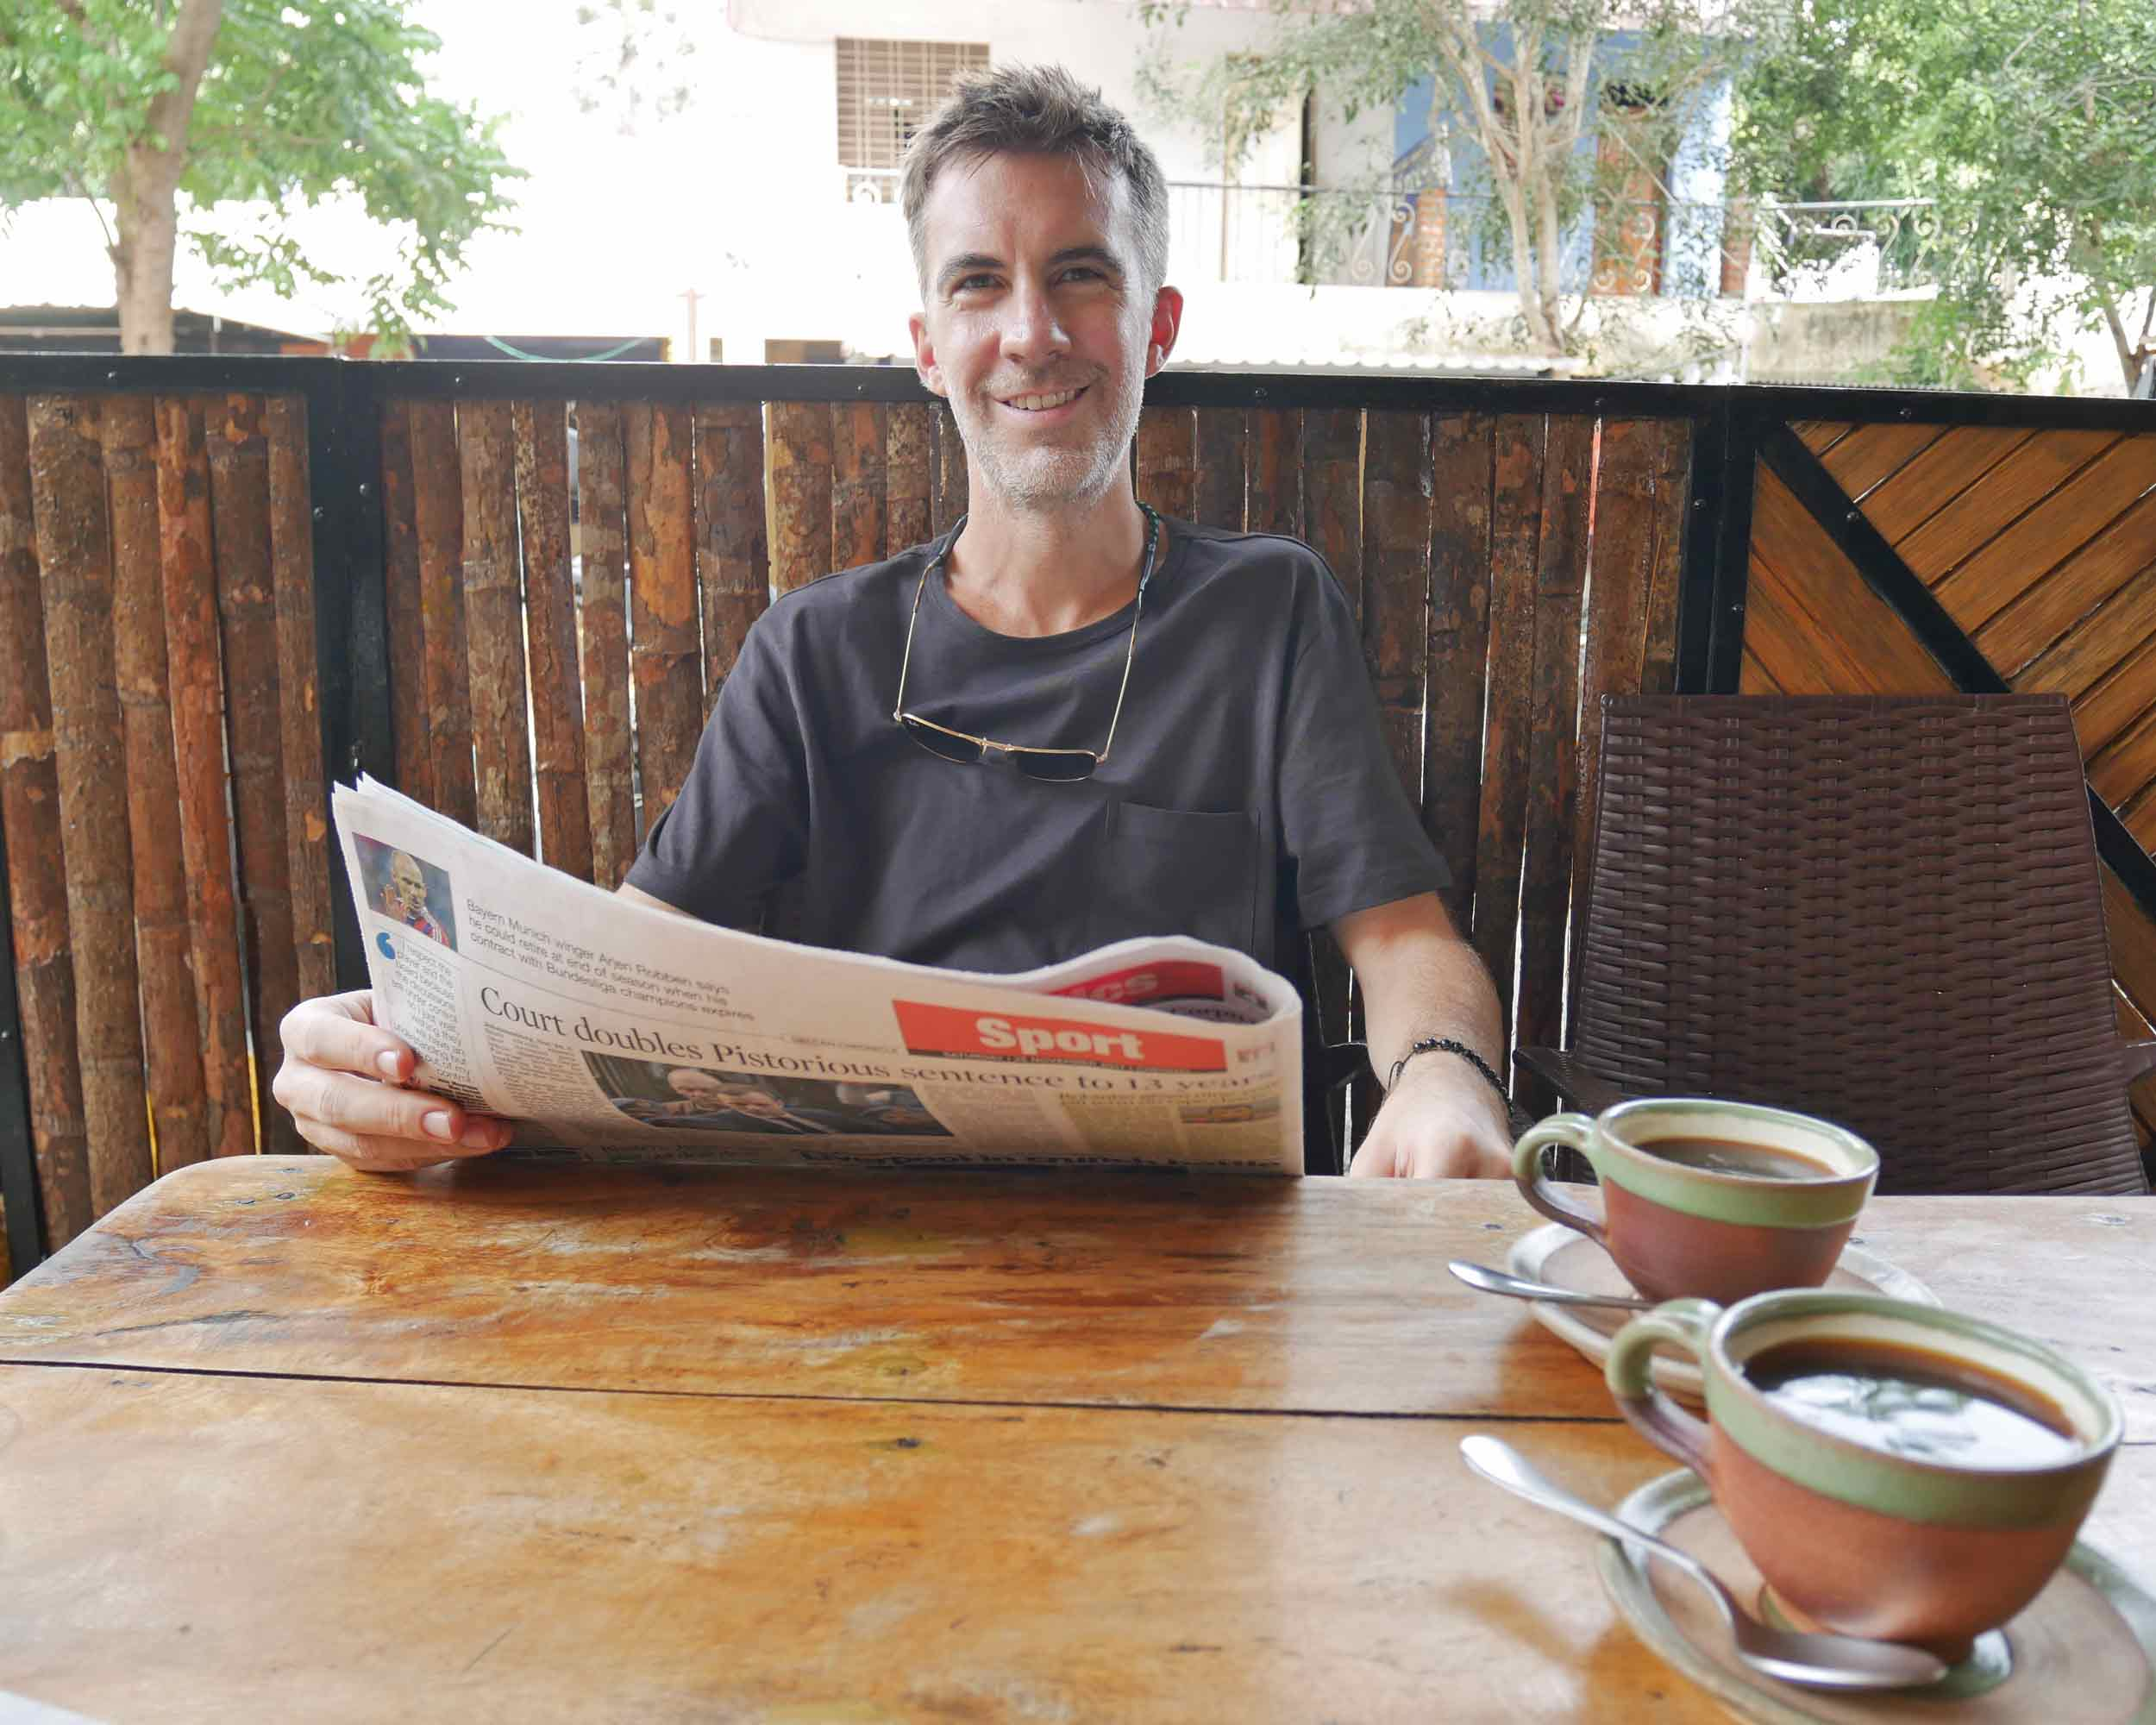 After weeks in India, we thoroughly enjoyed the fantastic western coffee options available in the cafes around Auroville (Nov 25).